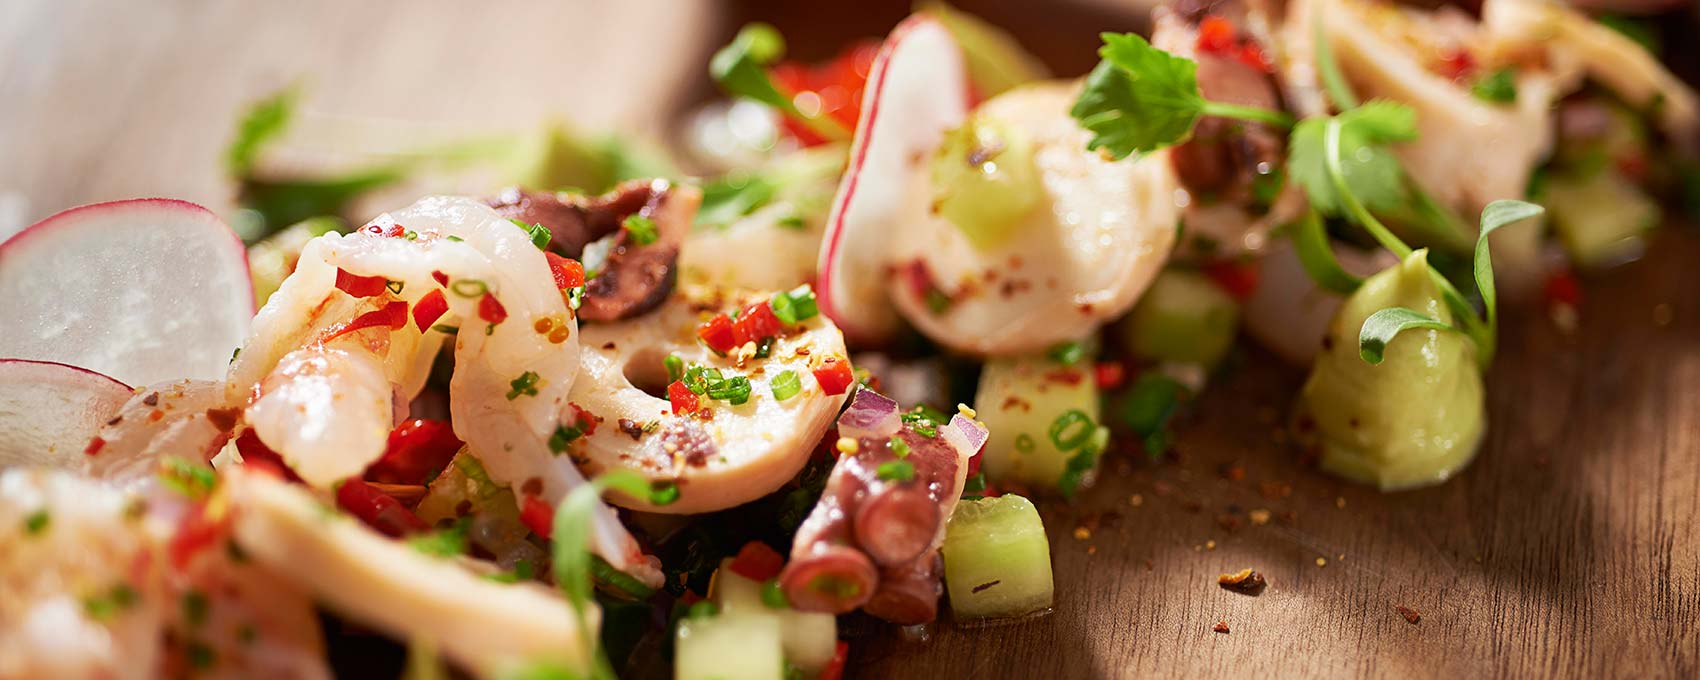 Hawksworth-Restaurant-Squid-Ceviche-home